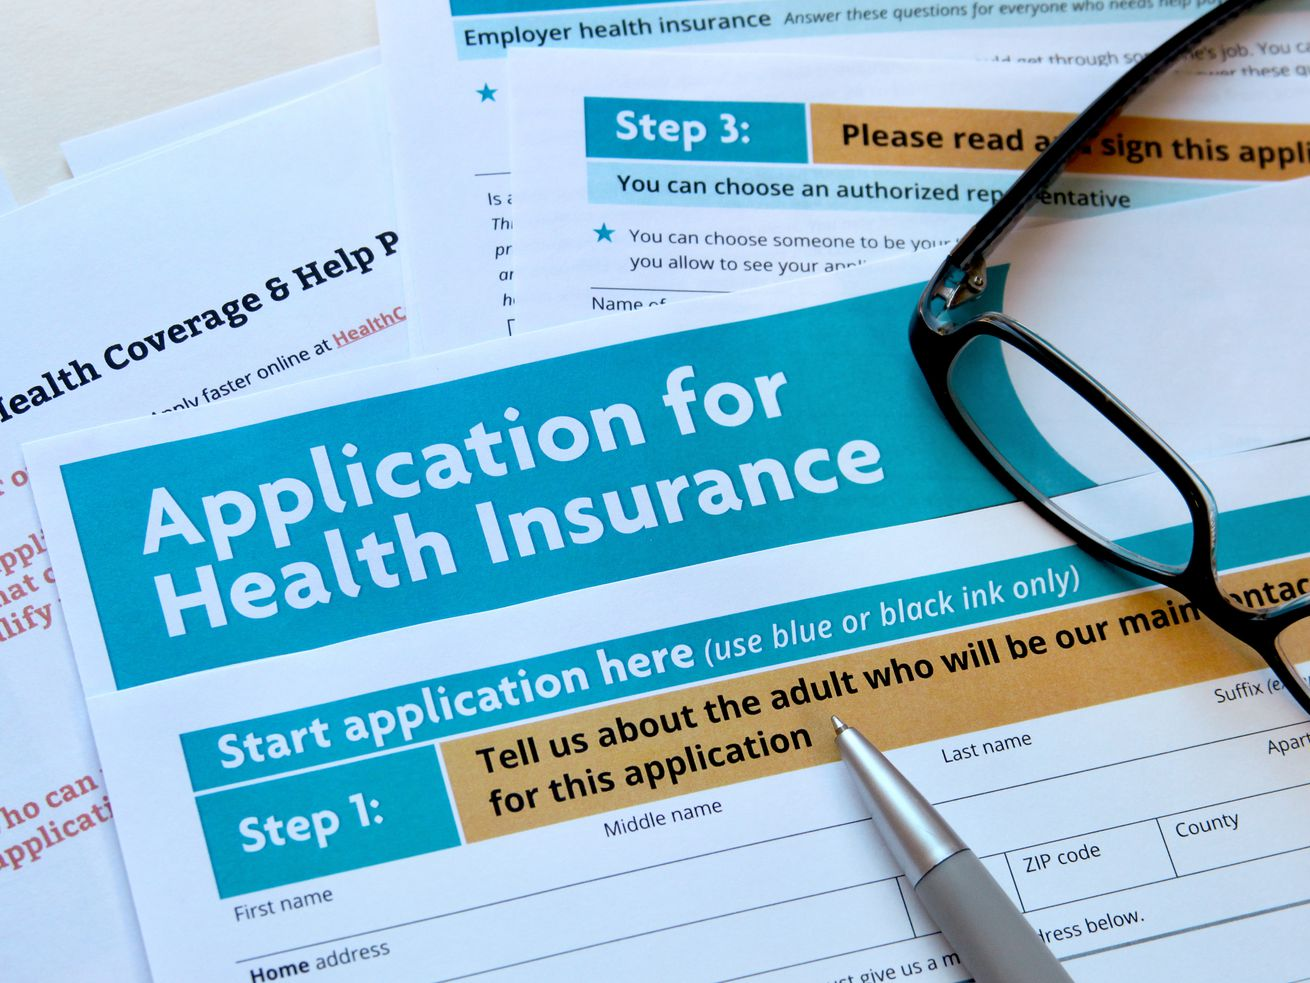 Two new policy changes could help millions of uninsured Americans get health coverage at a price they can afford.